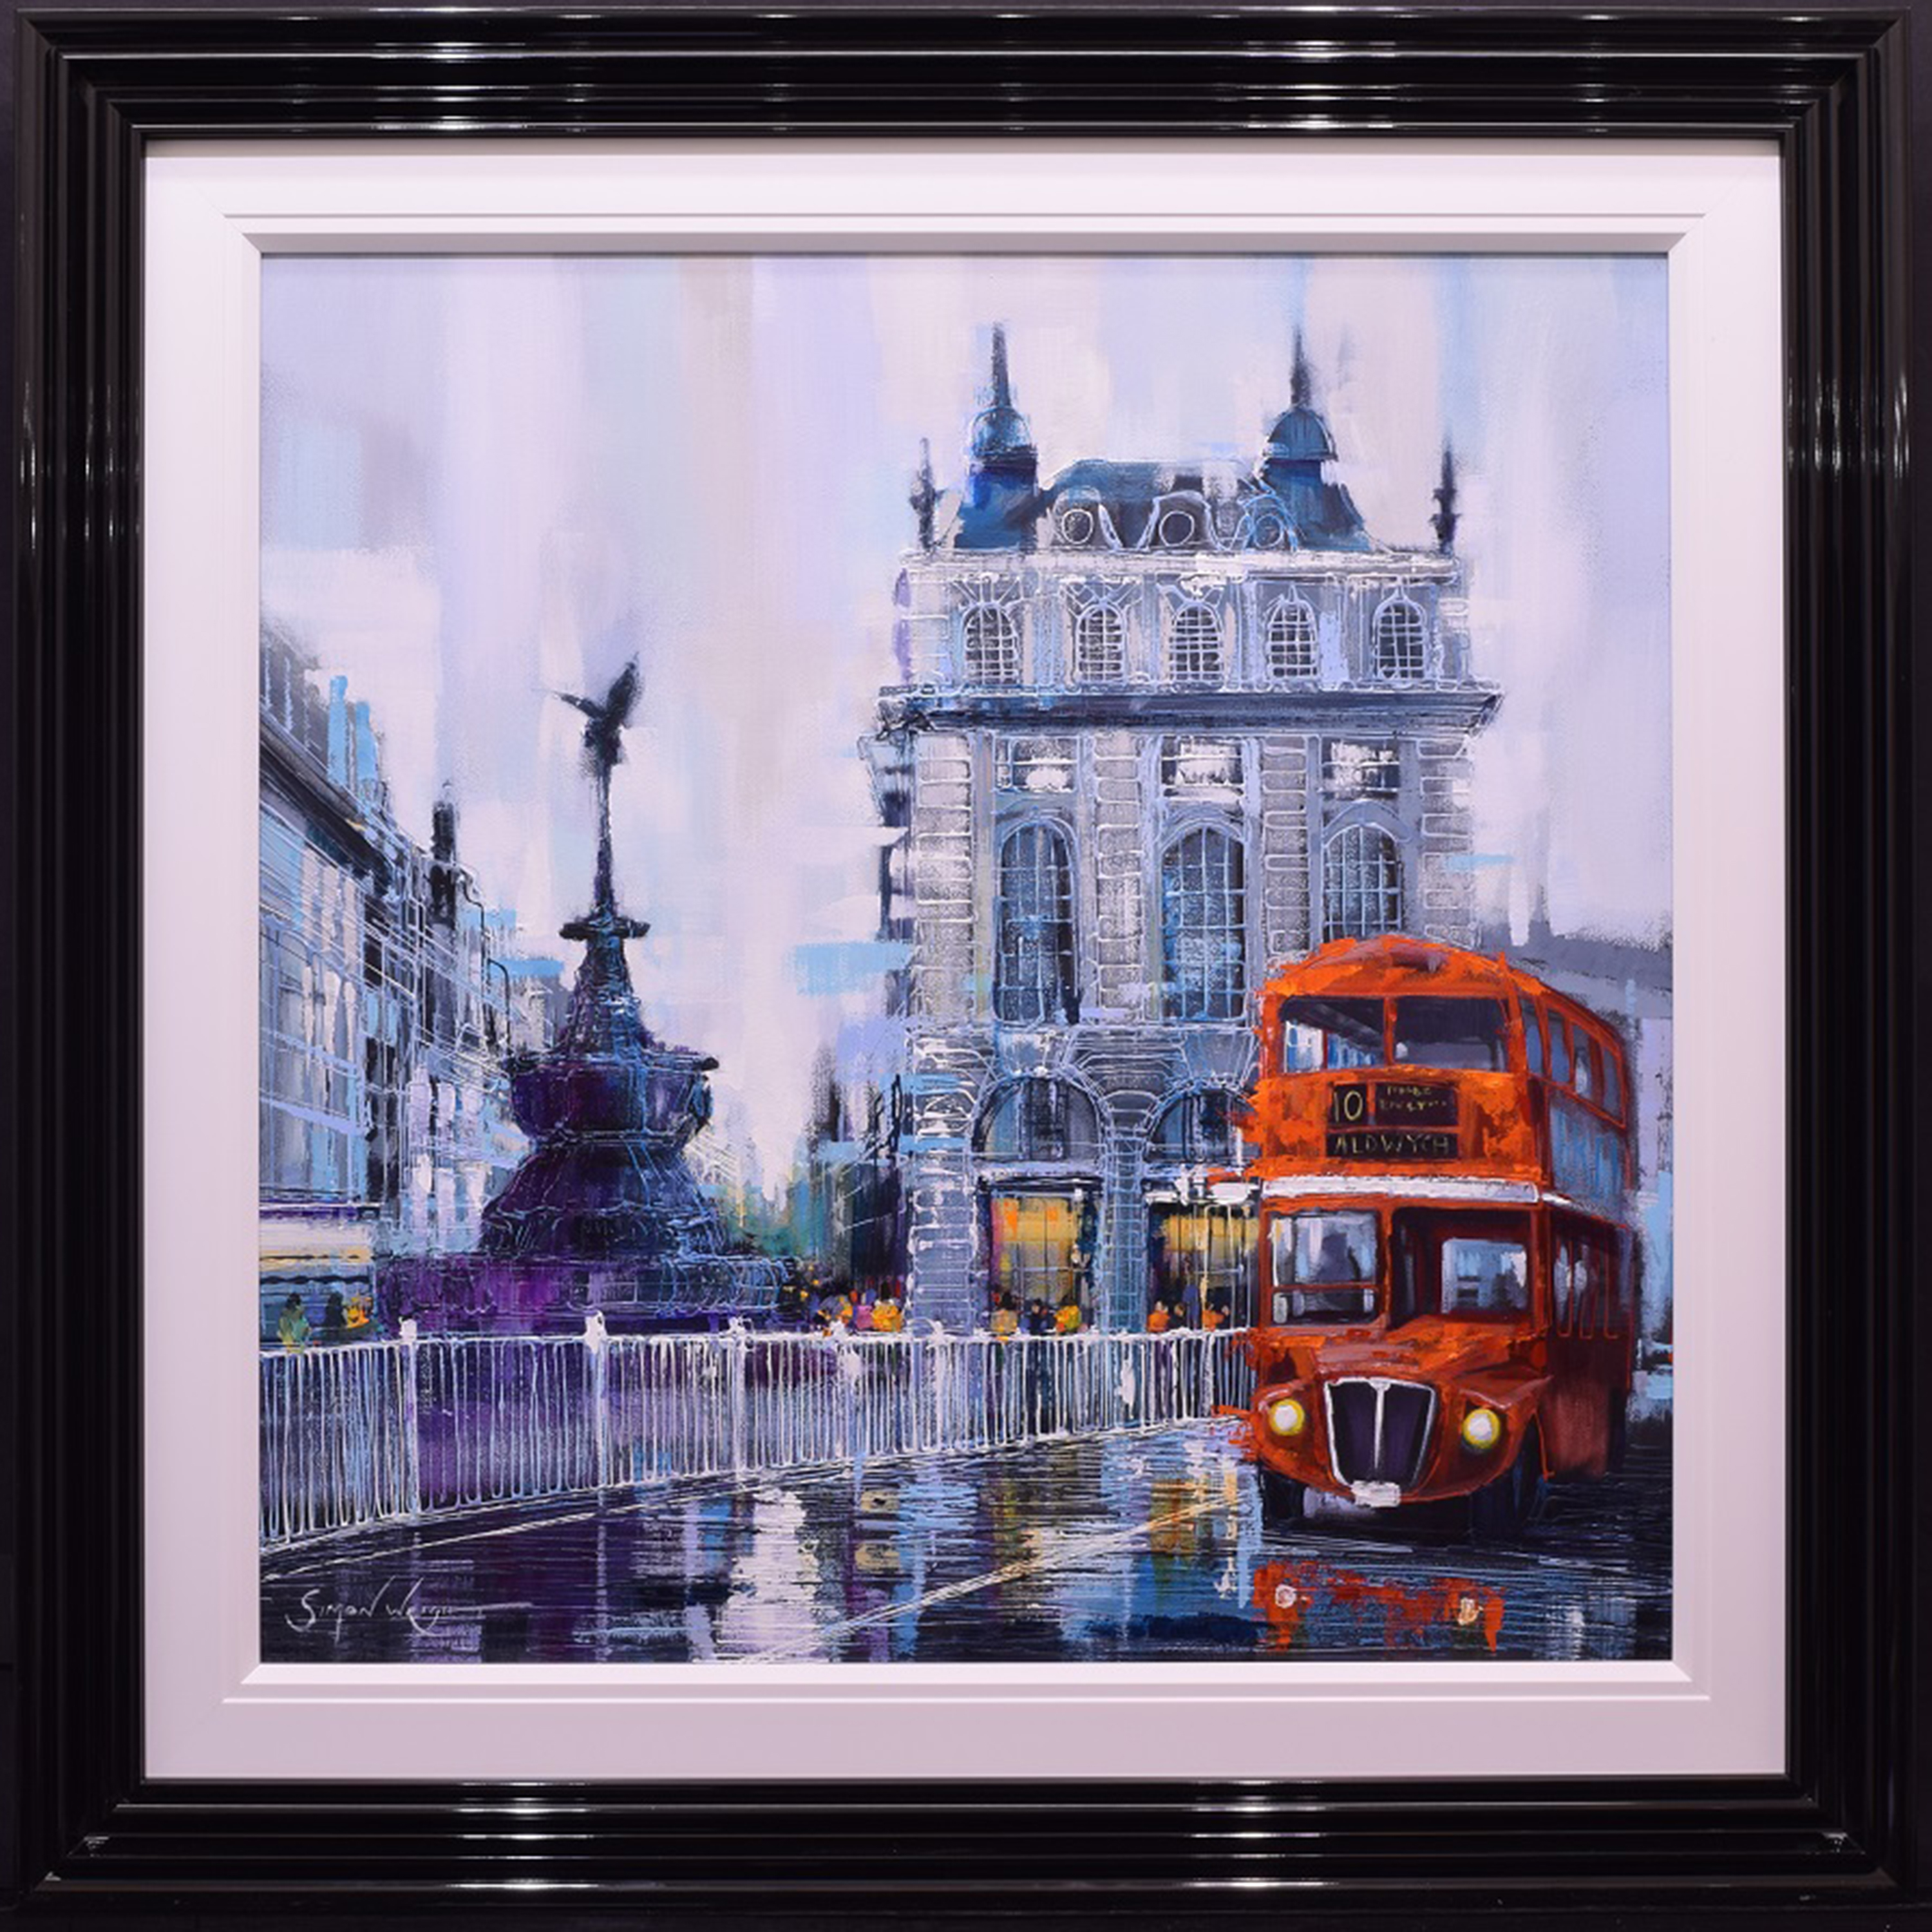 Piccadilly Circus by Simon Wright